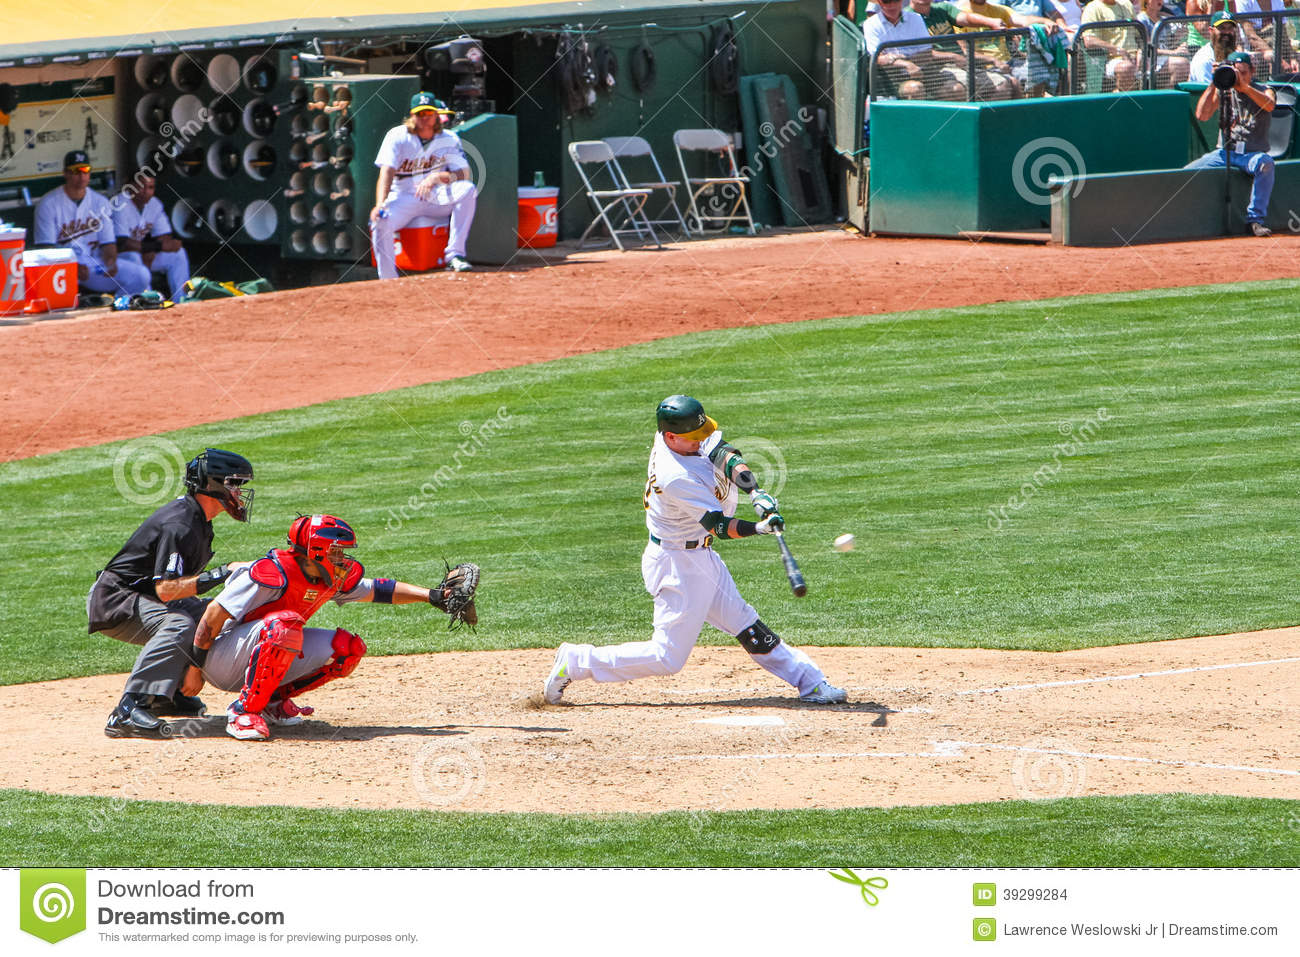 Major League Baseball - Homerun Swing